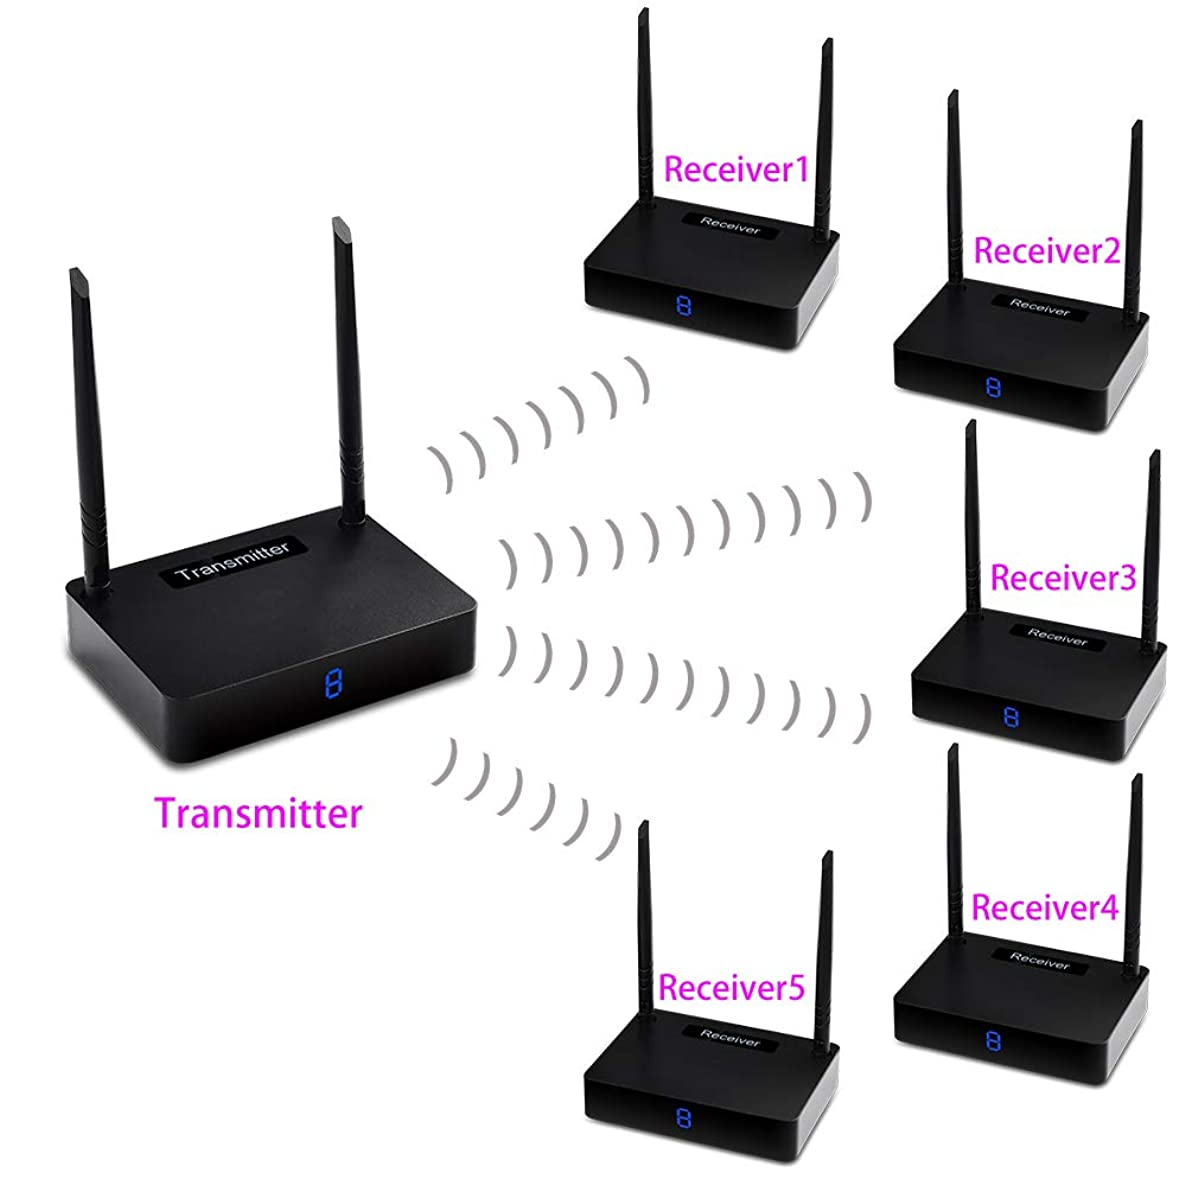 Measy HD585-5 Wireless Video Transmitter Dual Antenna 1150ft/350m HD Display kit(1TX to 5RX)